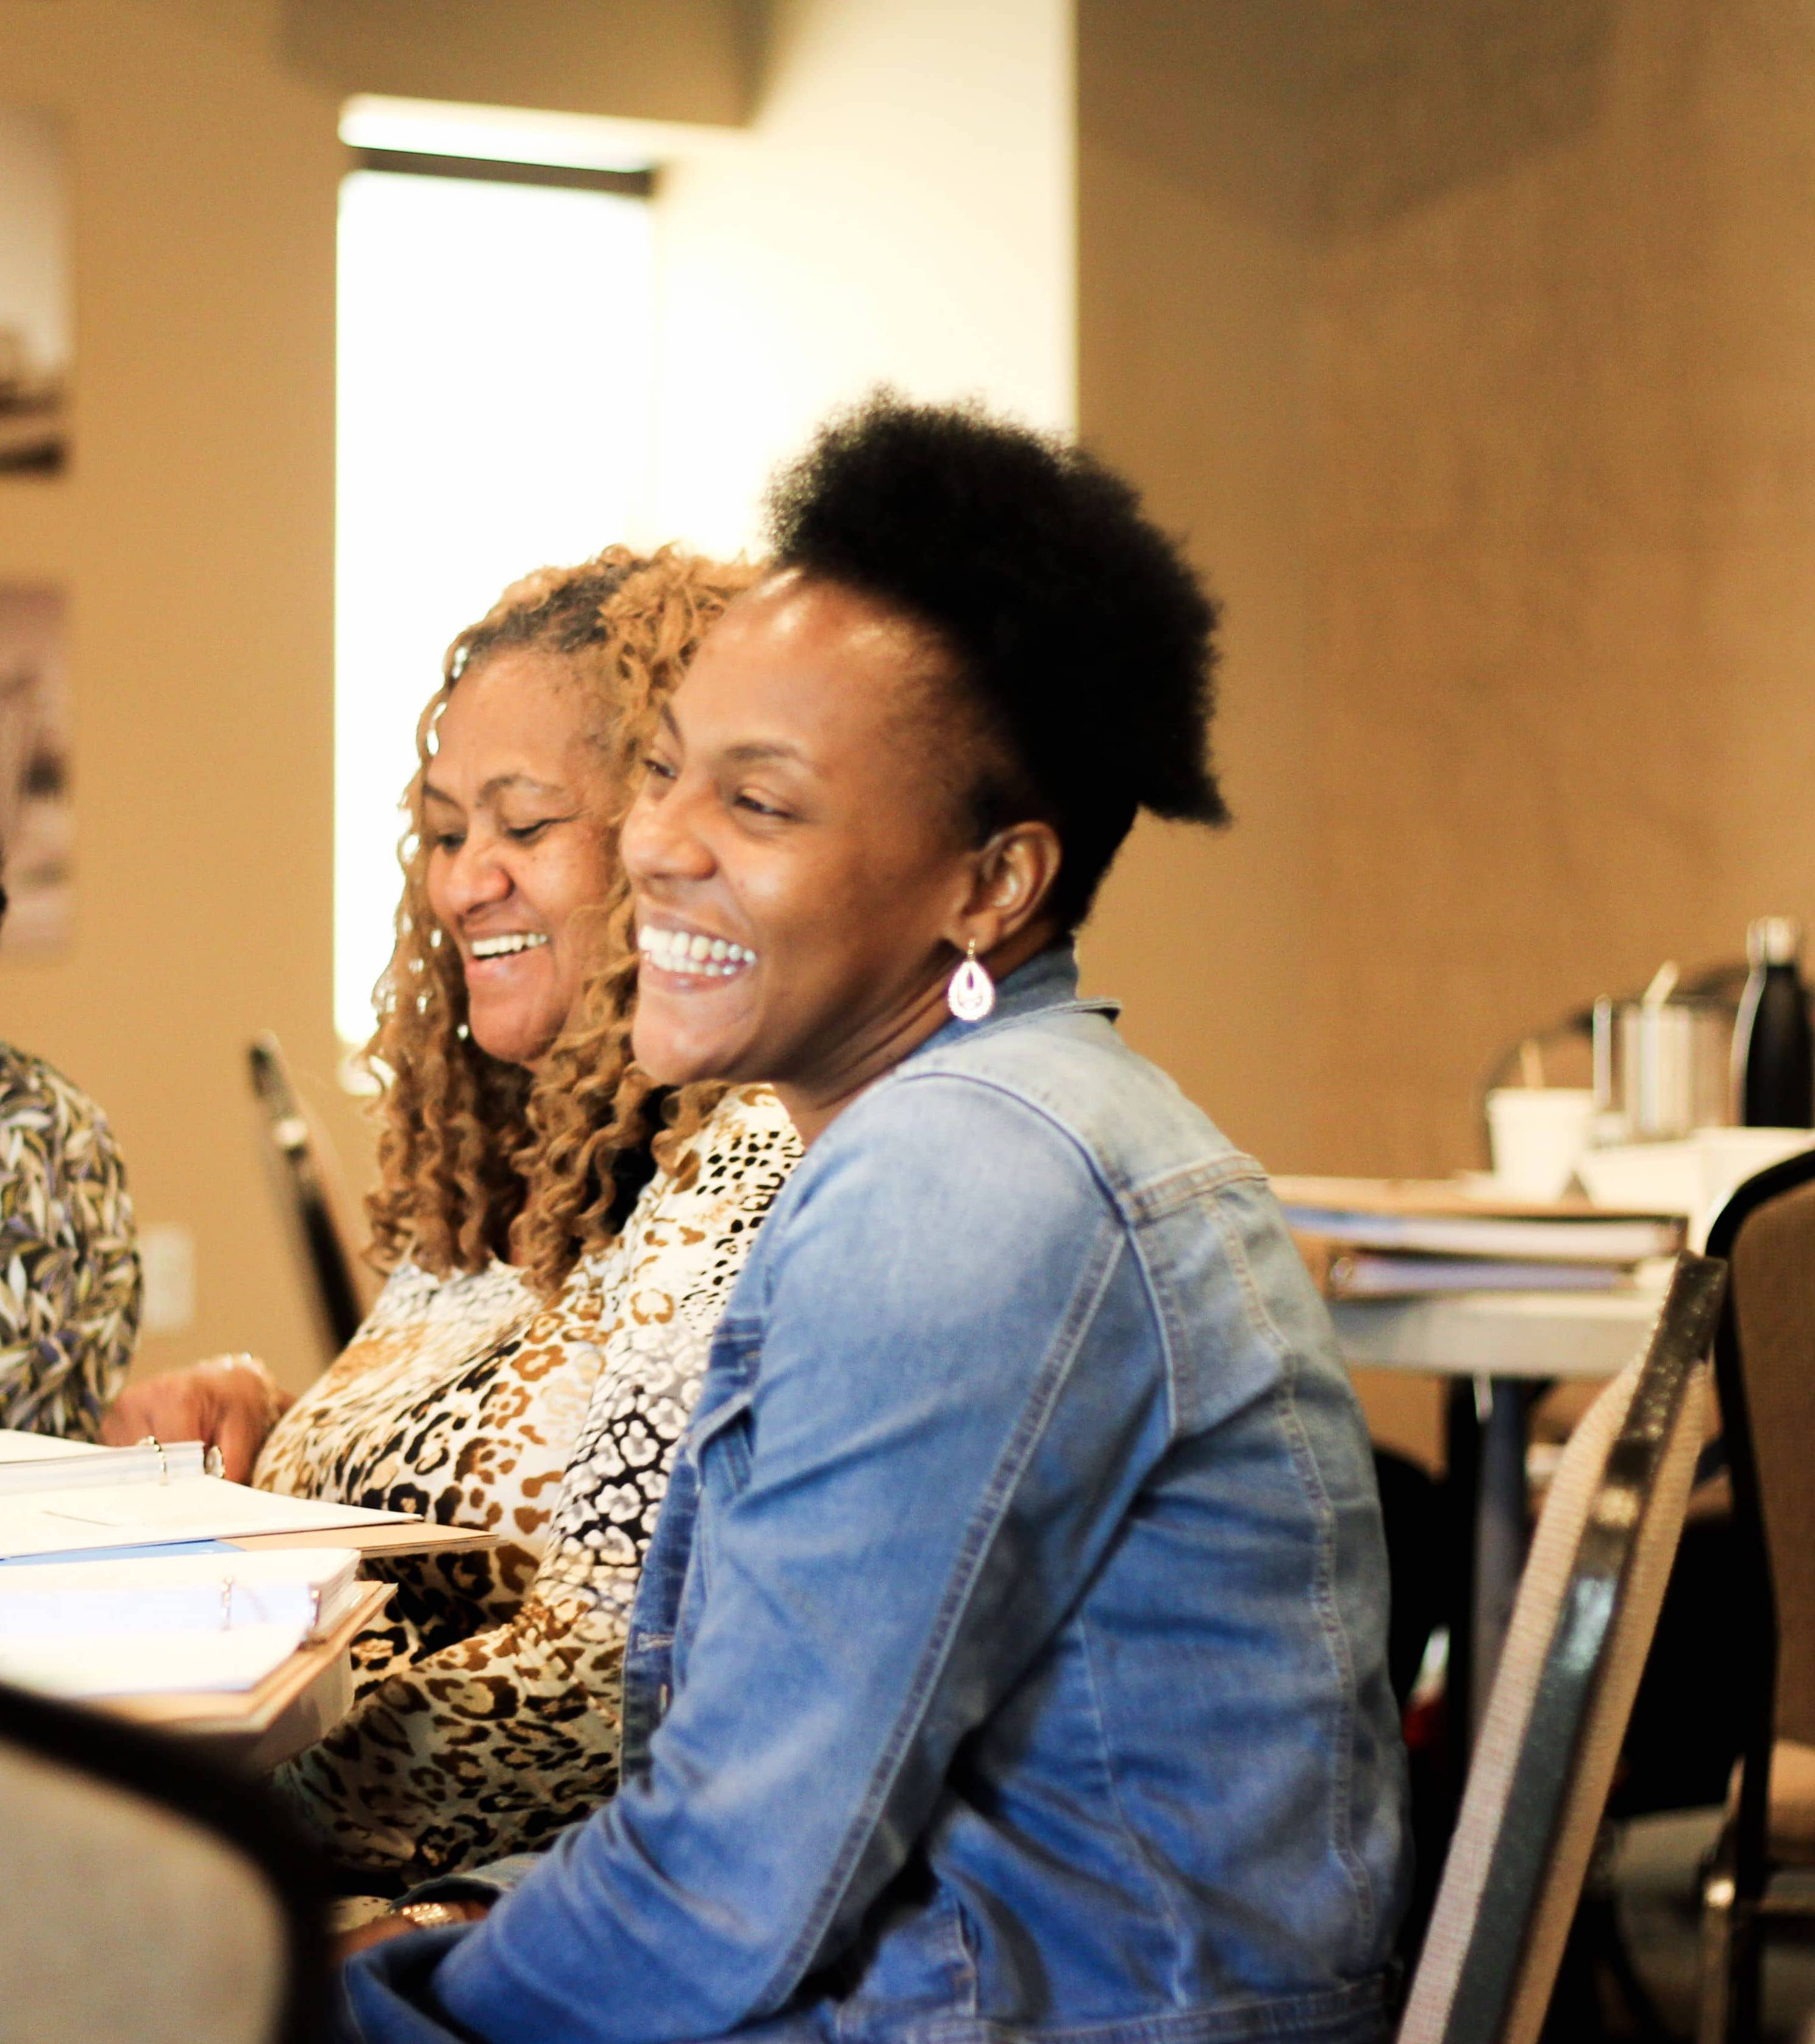 Two young black women smile as they listen to a presentation.